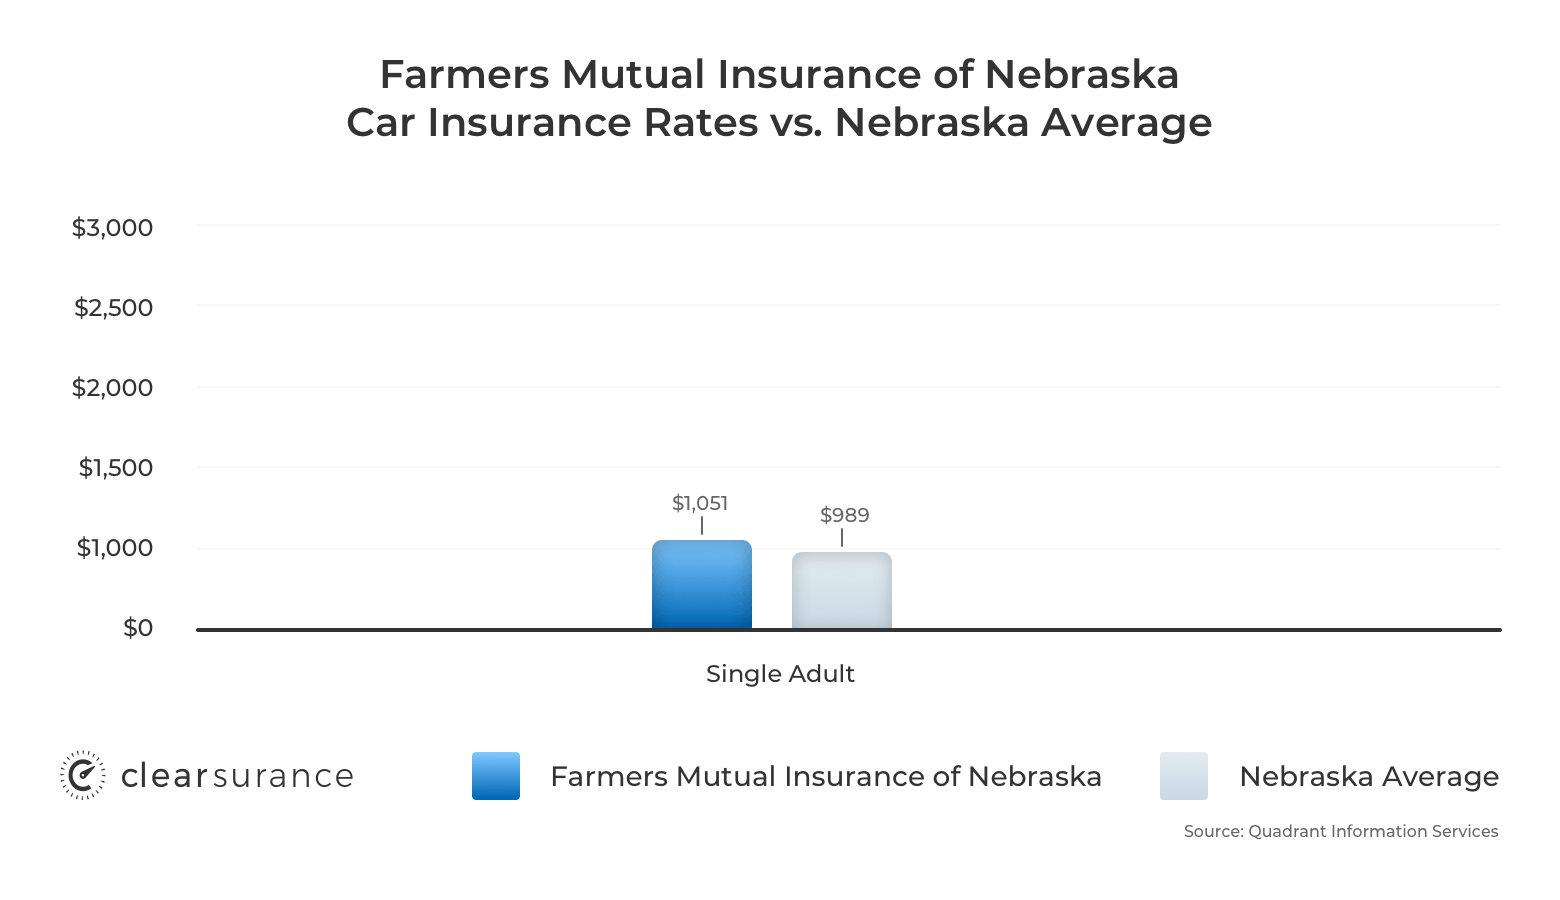 Farmers Mutual Insurance of Nebraska car insurance rates